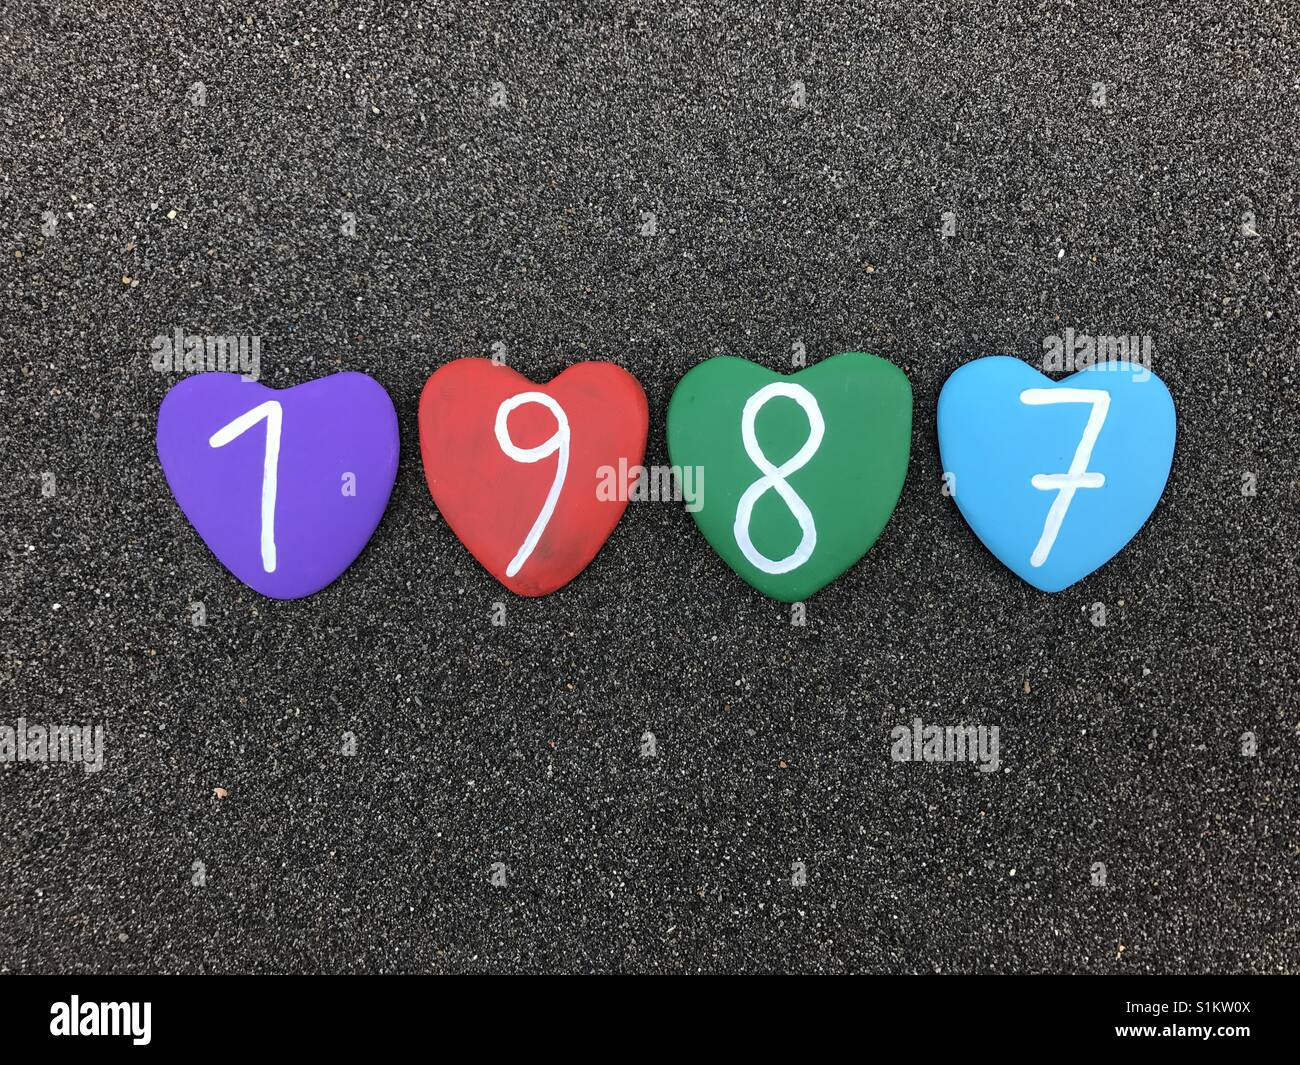 1988 year with colored heart stones over black volcanic sand - Stock Image